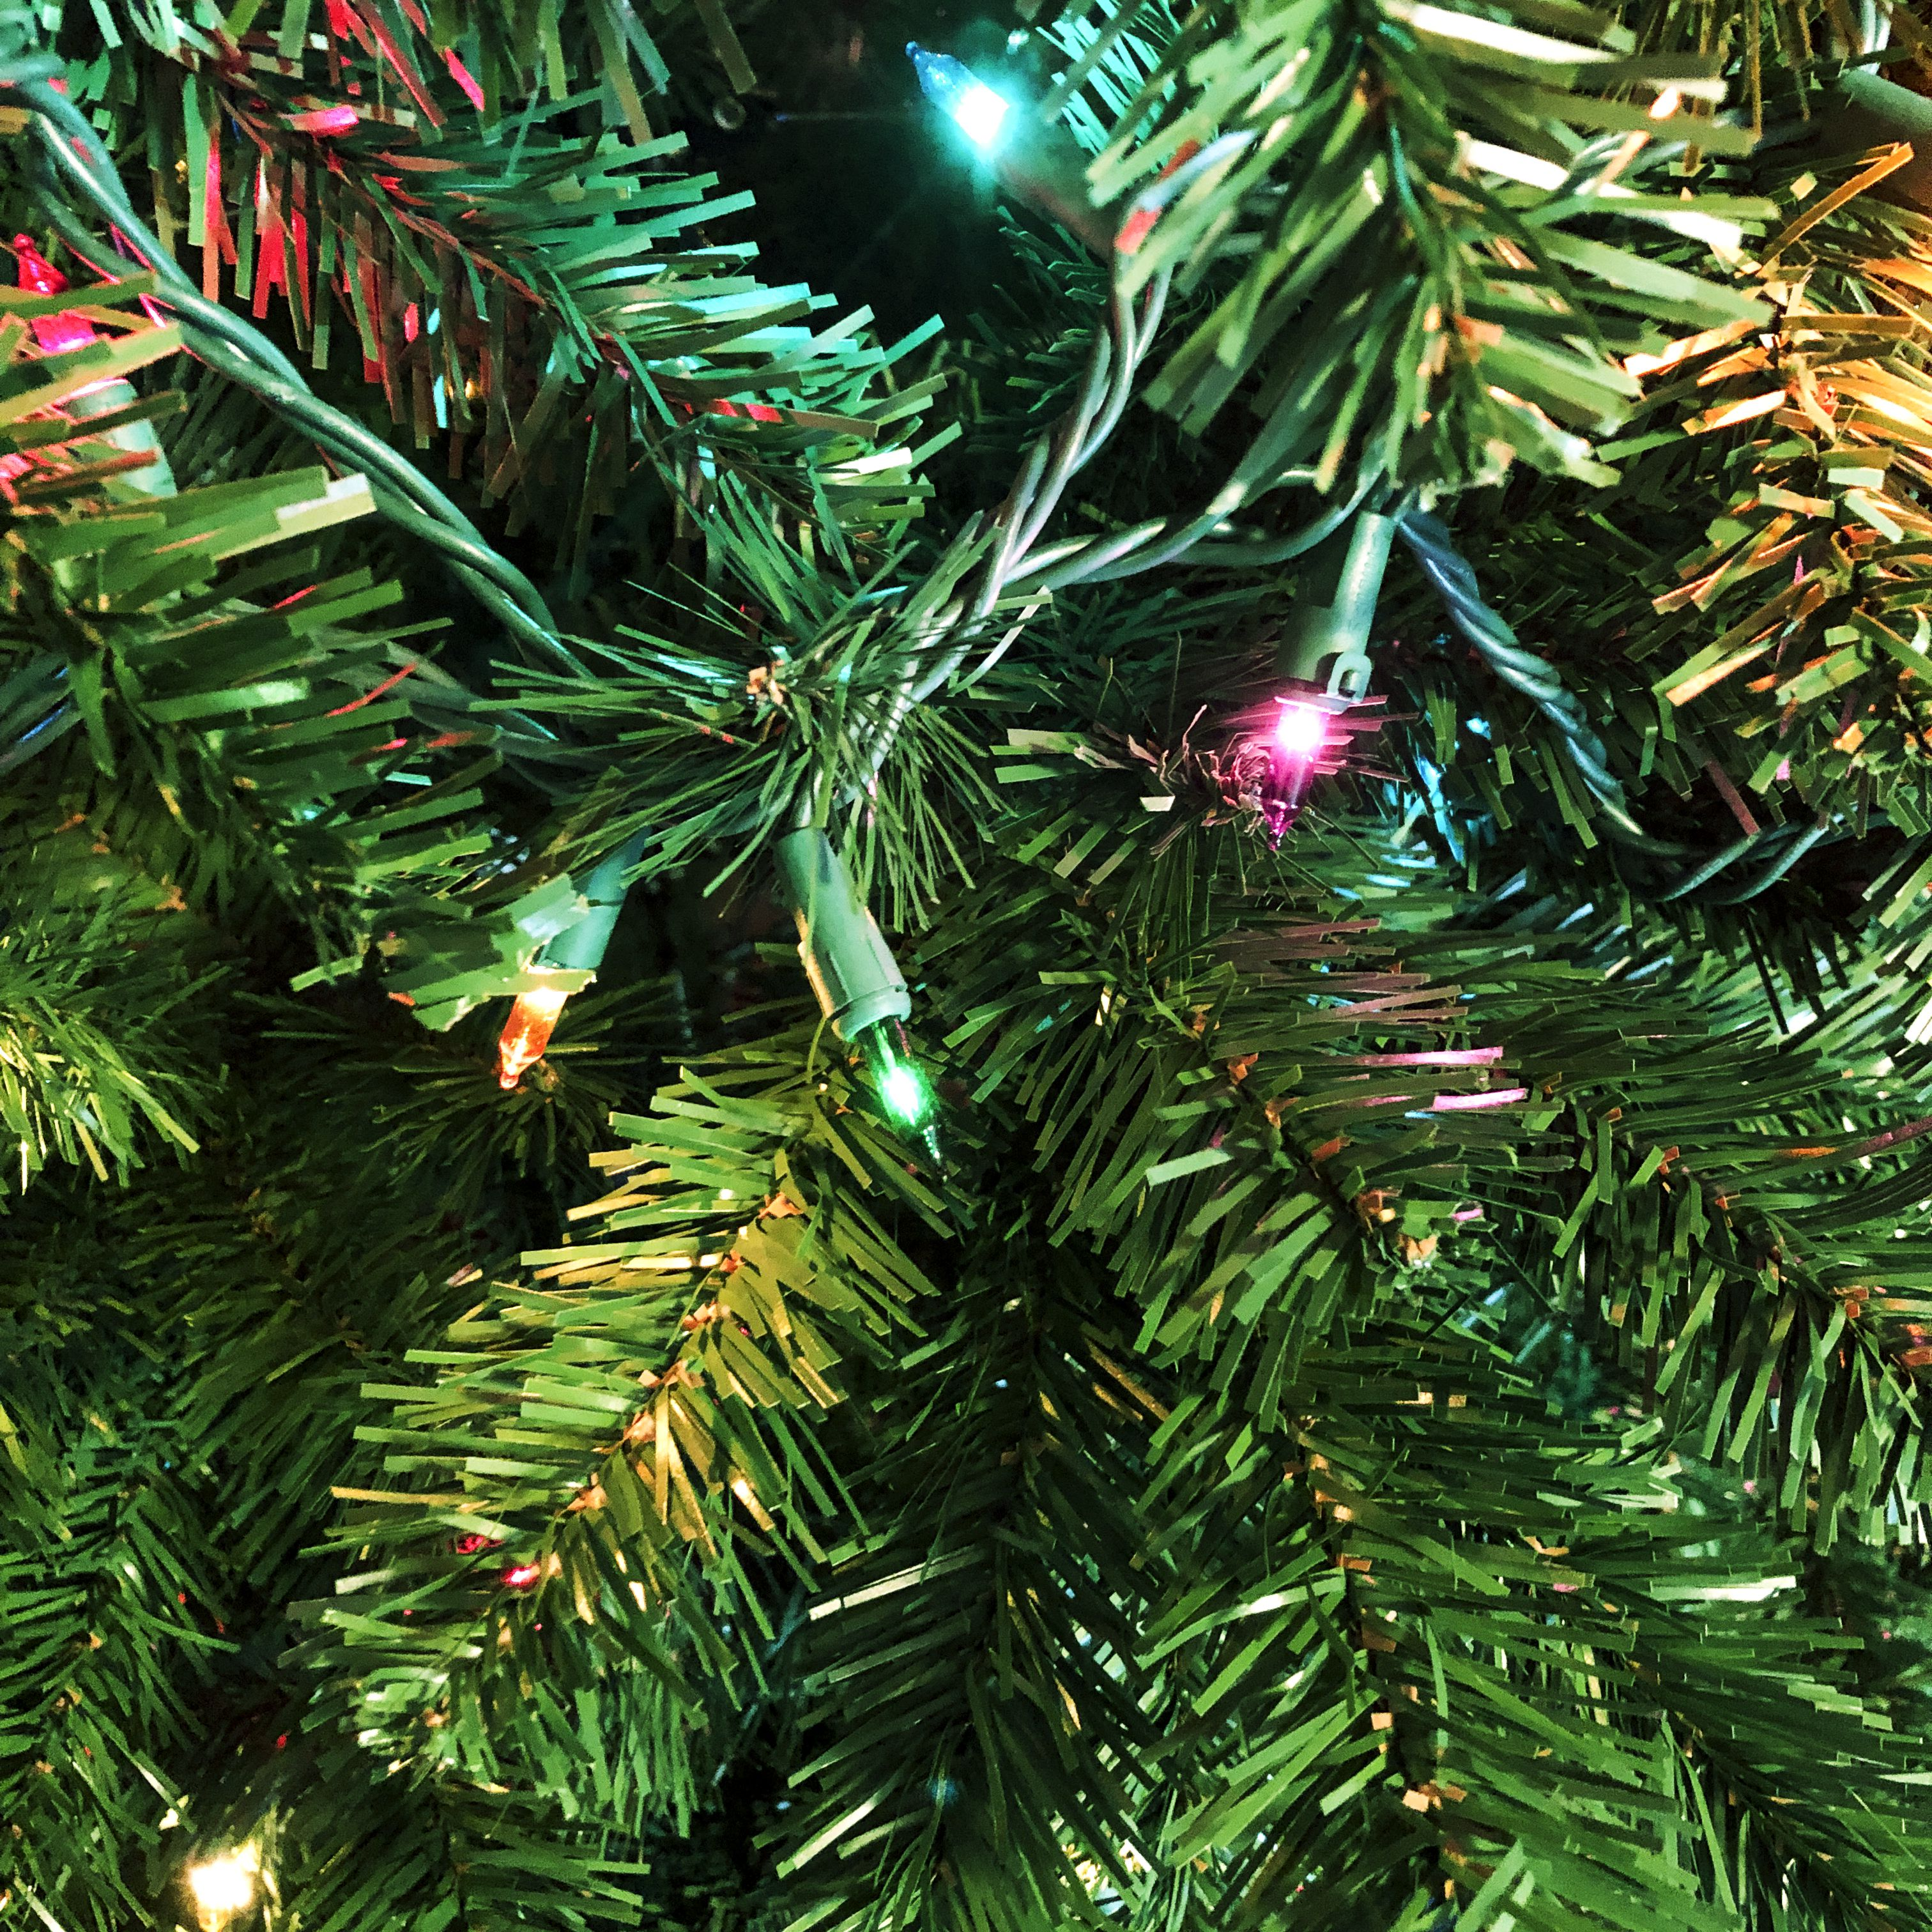 Best Imitation Christmas Trees: The 12 Best Artificial Christmas Trees Of 2019